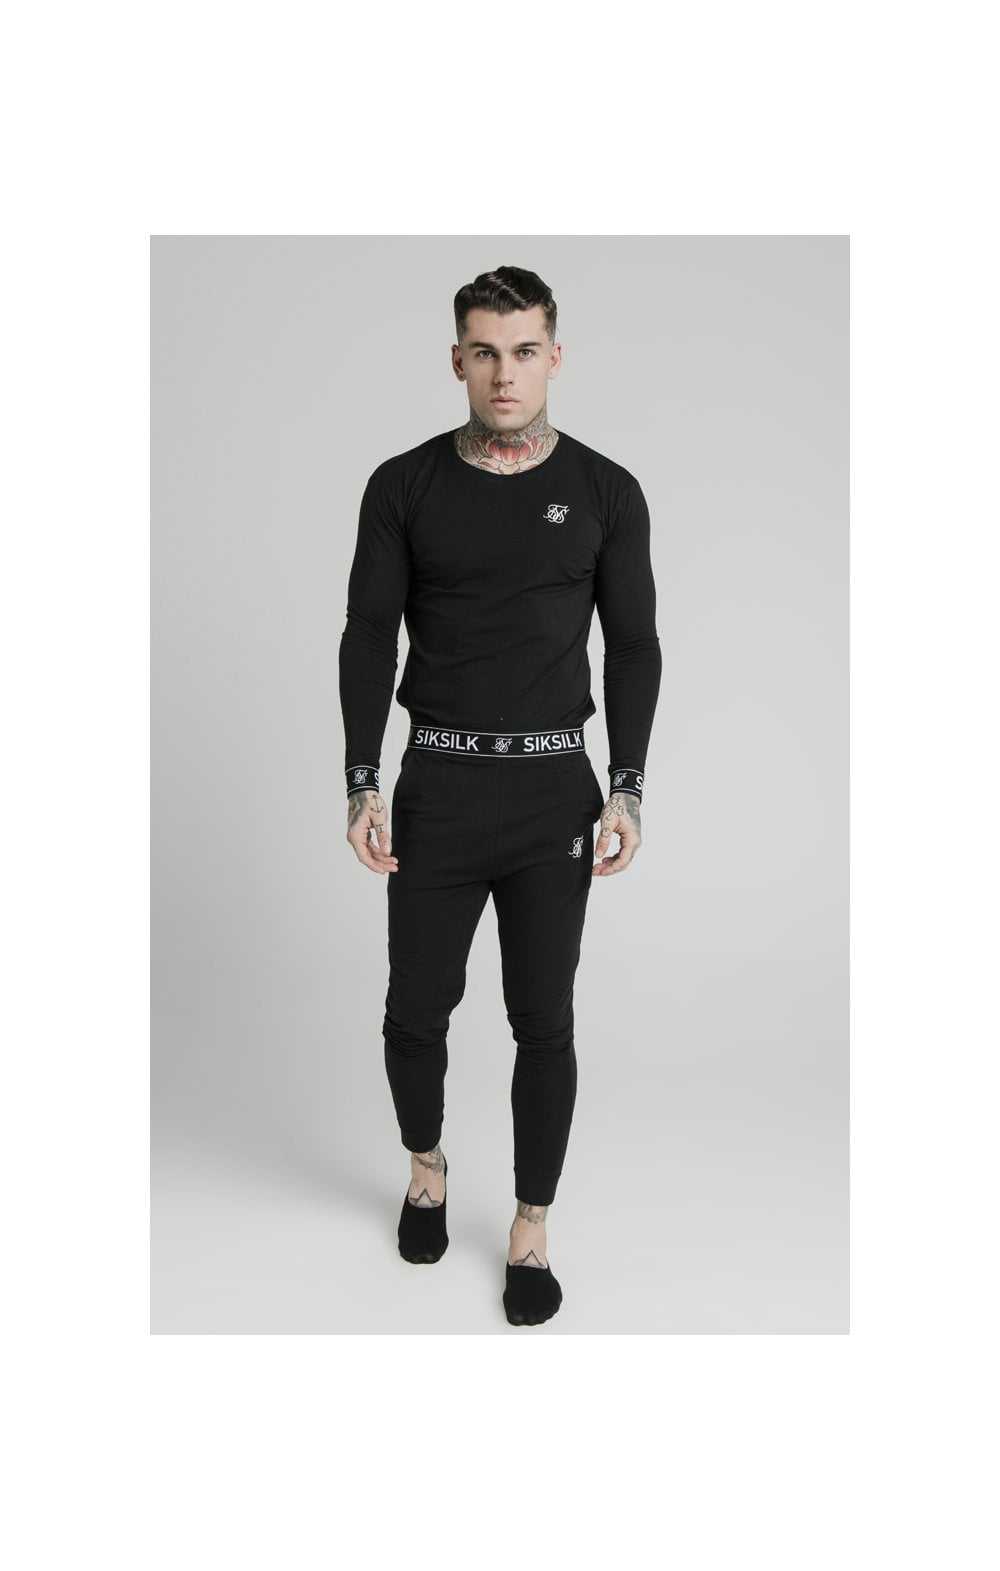 SikSilk L/S Lounge Tee – Black (2)